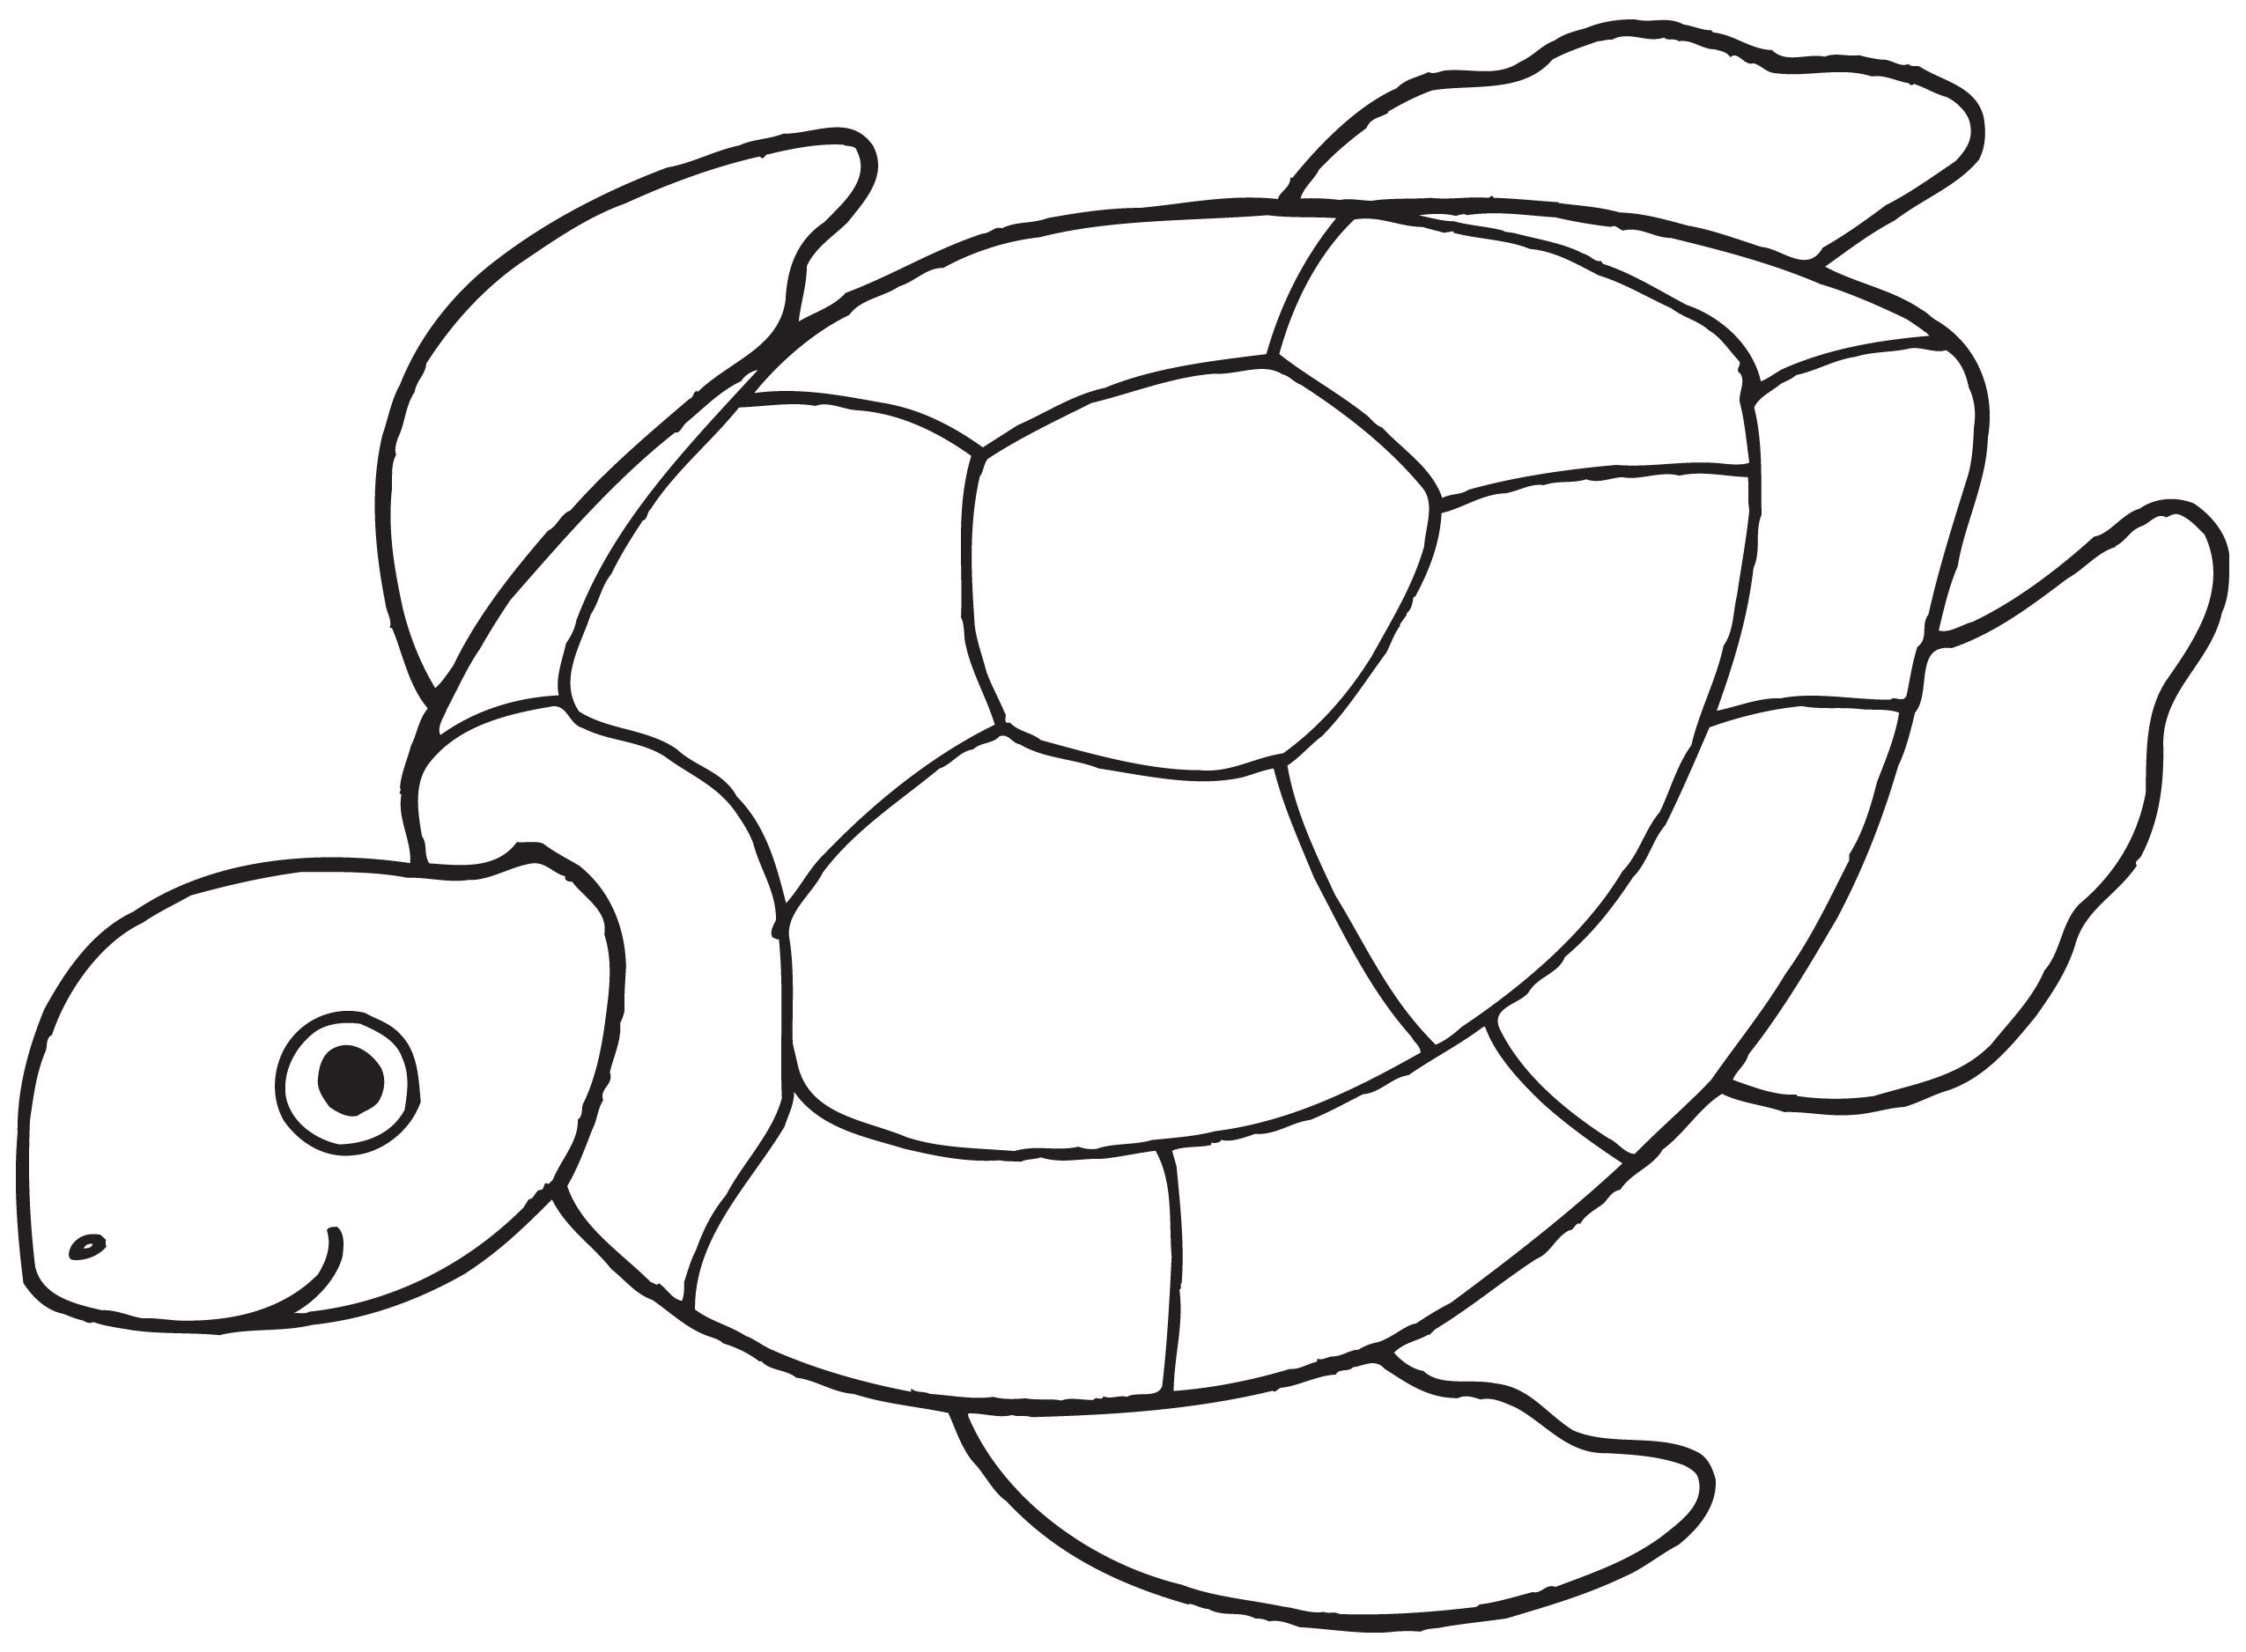 Sea Turtle Coloring Pages For Kids With Free Printable For